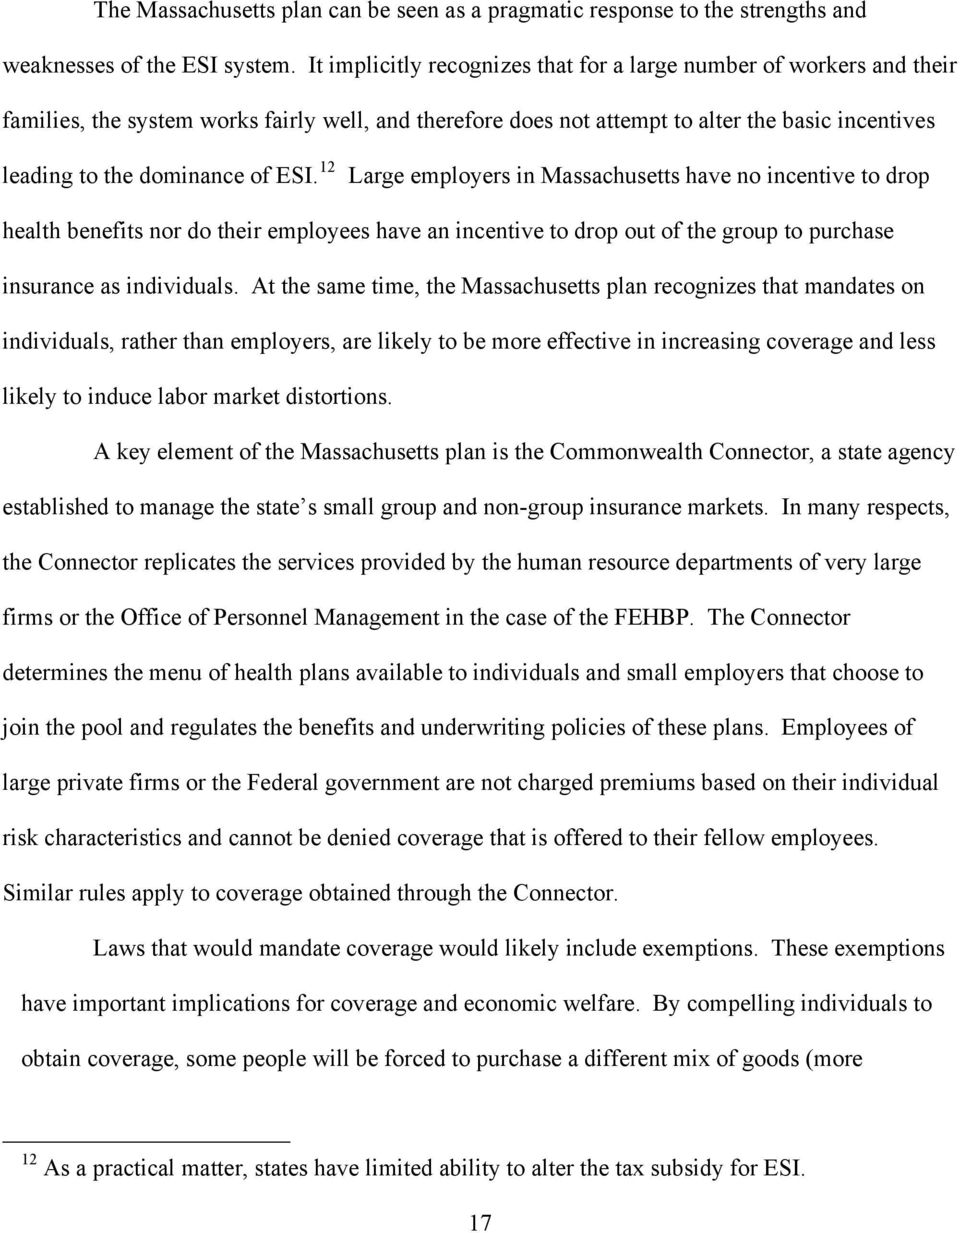 ESI. 12 Large employers in Massachusetts have no incentive to drop health benefits nor do their employees have an incentive to drop out of the group to purchase insurance as individuals.